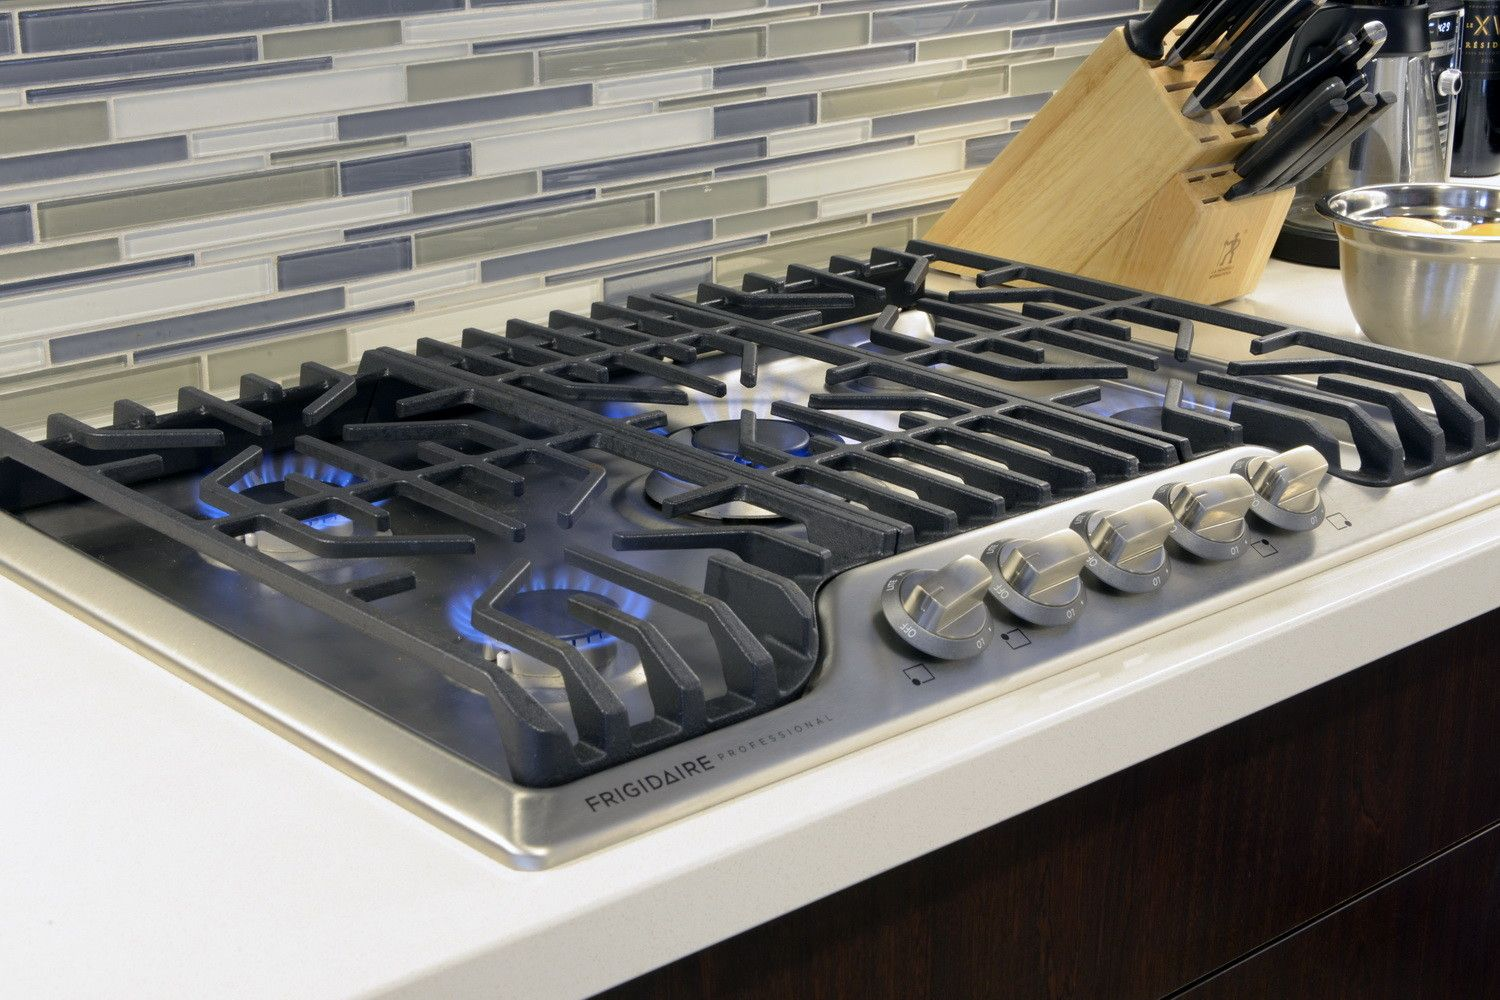 Whipping Up Dinner Is A Gas With Frigidaire S Professional Cooktop Grohe Kitchen Faucet Grohe Kitchen Gas Stove